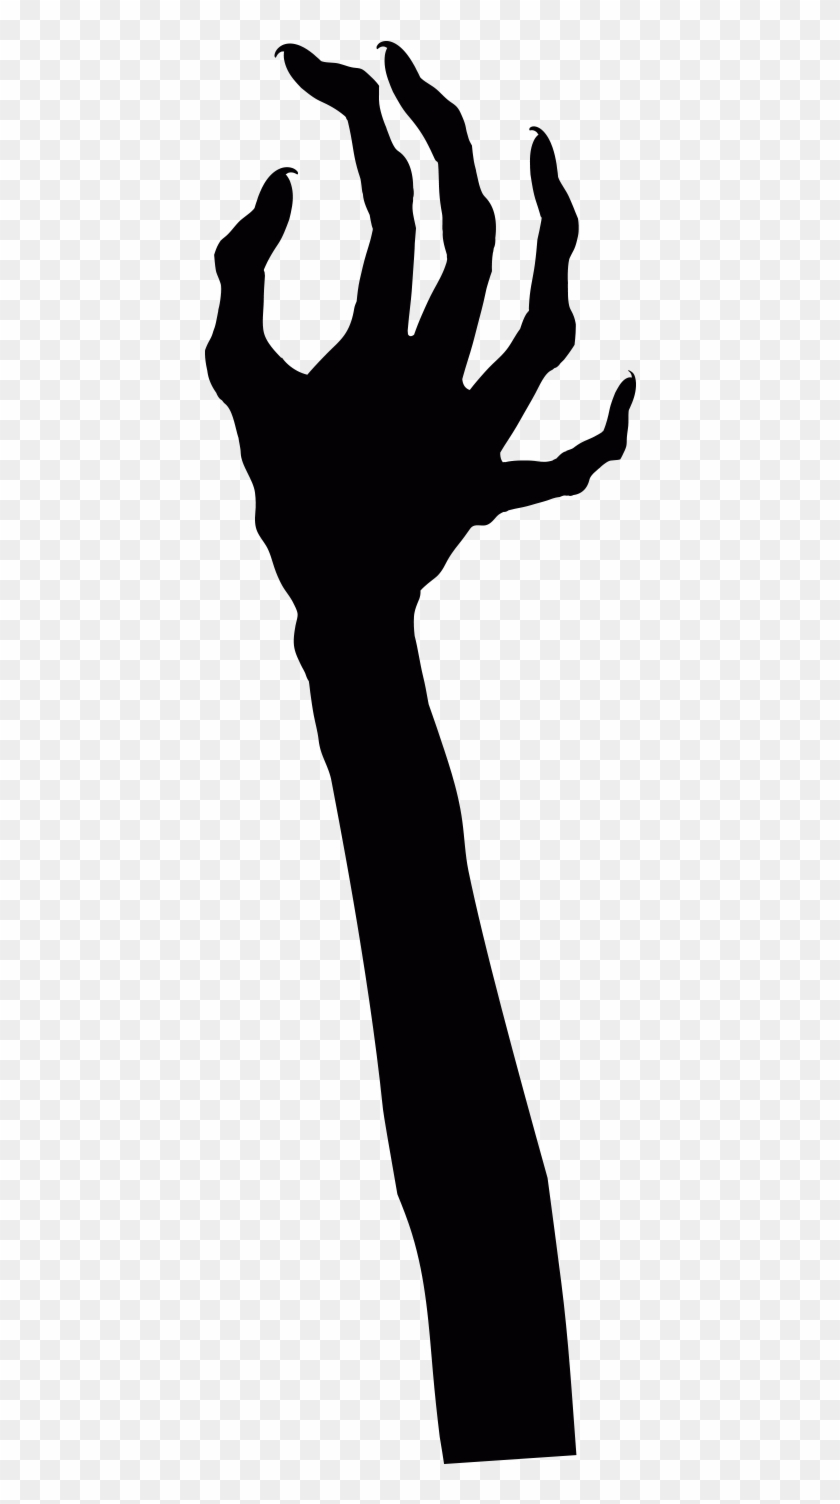 Demon hand clipart clipart images gallery for free download.